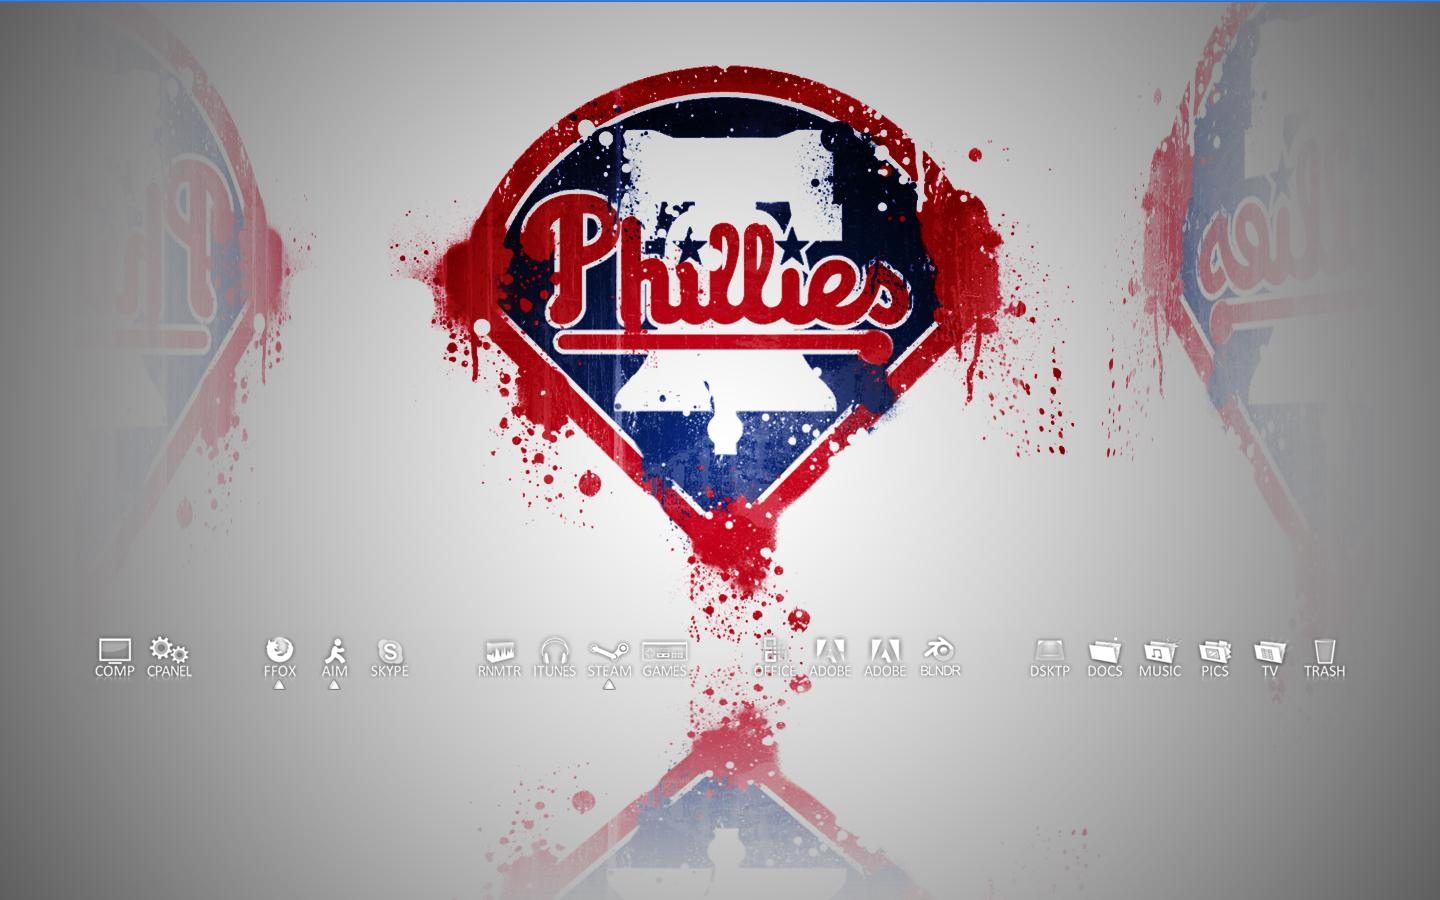 Phillies Wallpapers 2017 - Wallpaper Cave